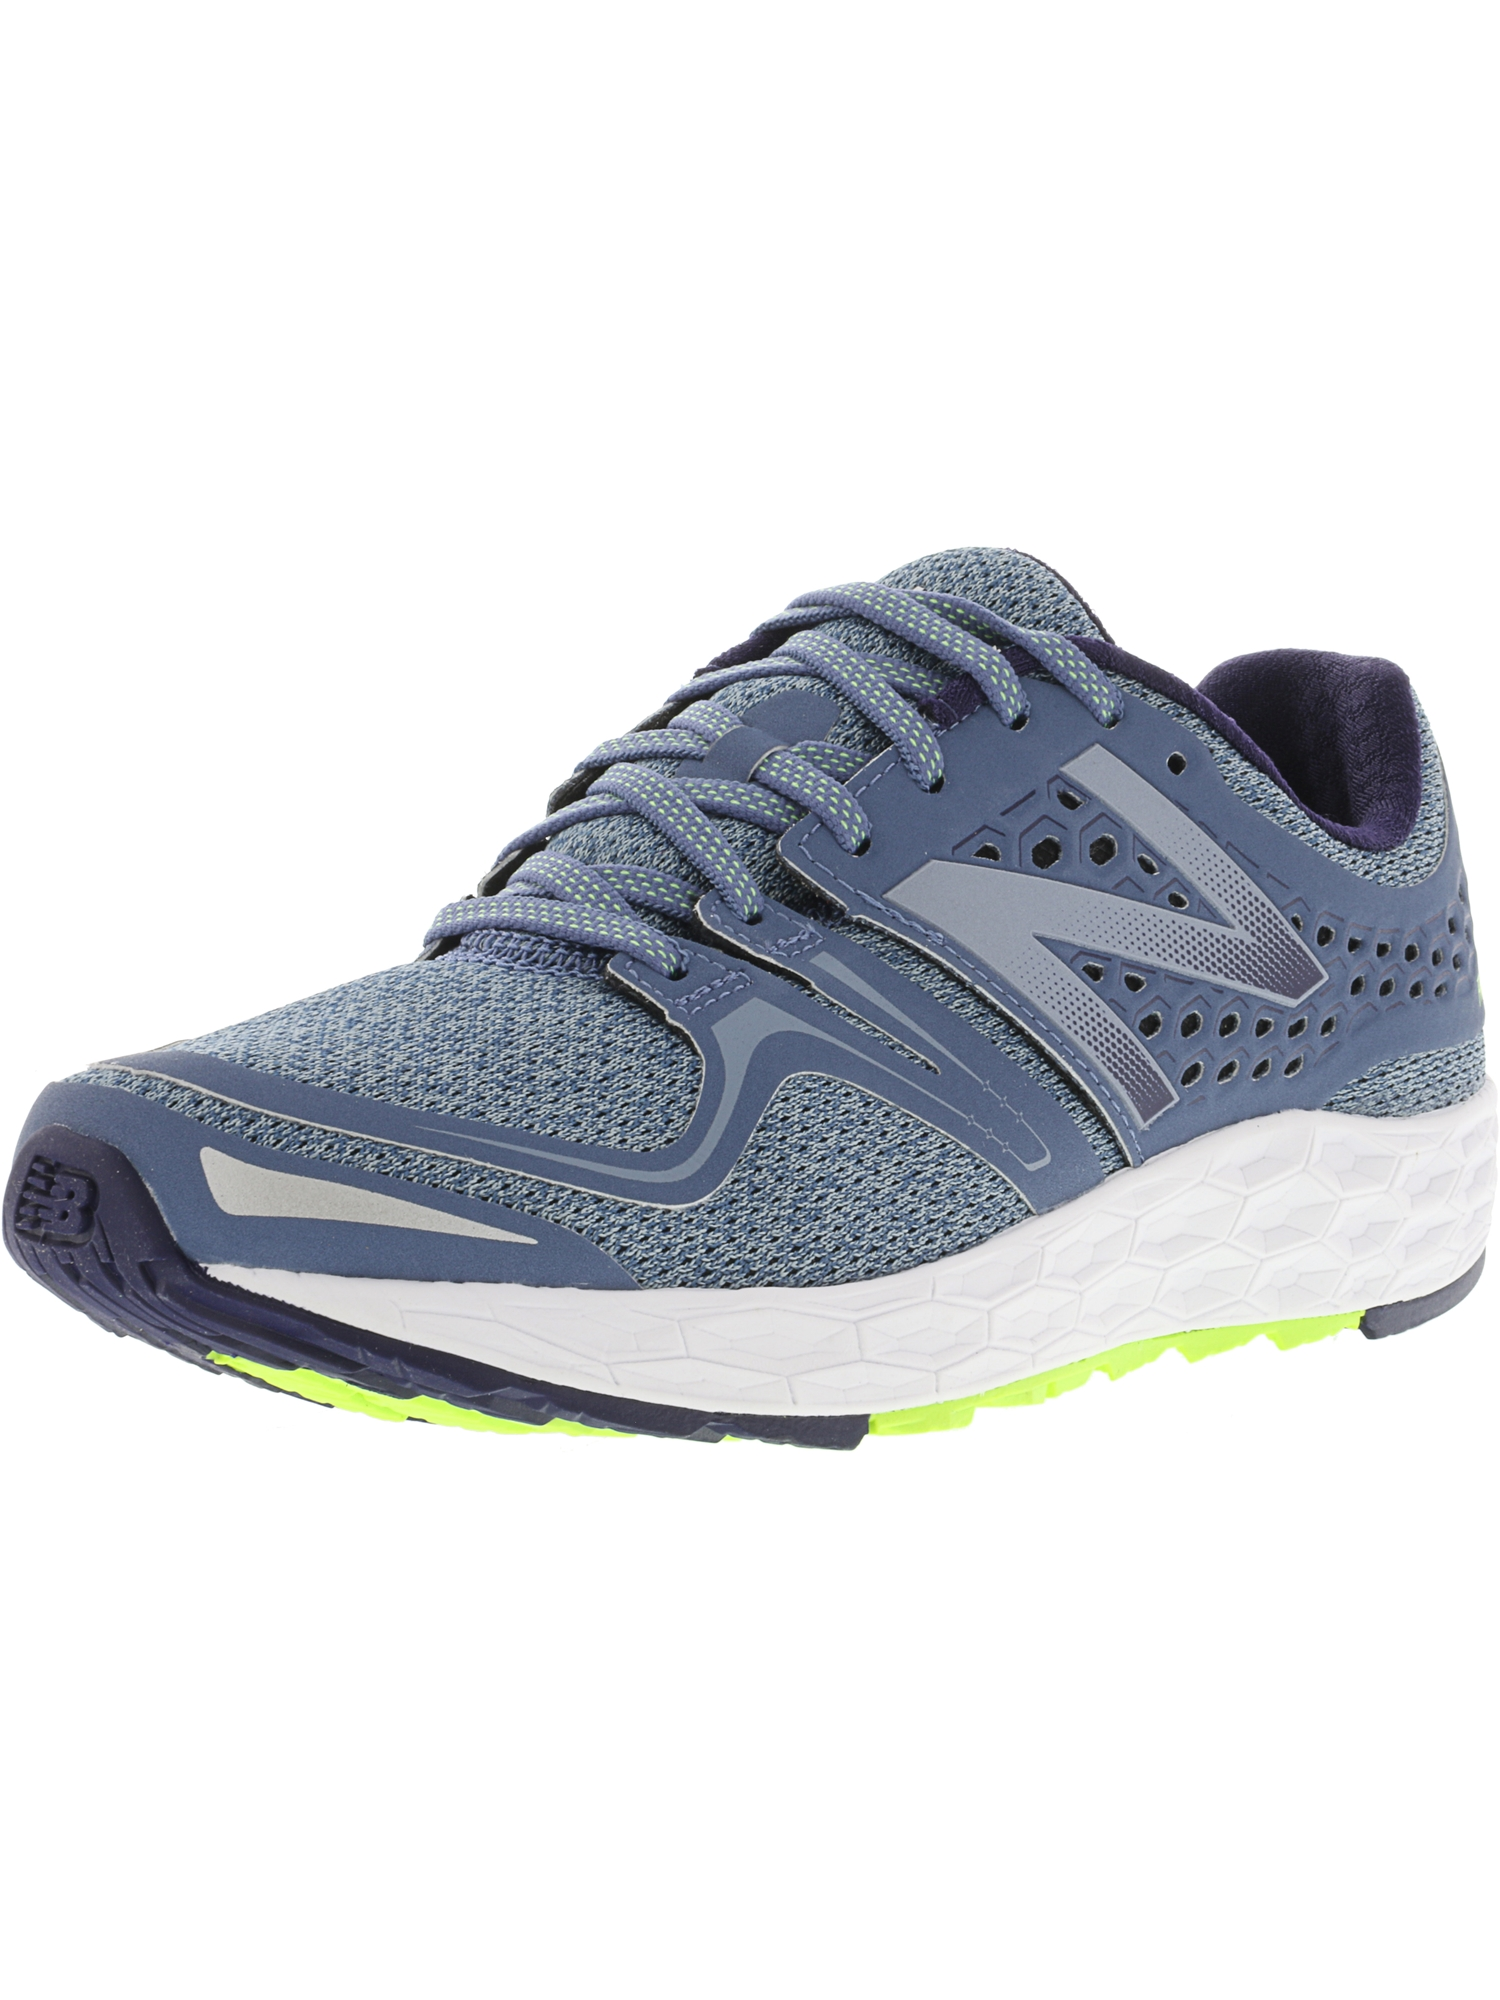 New Balance Women's Wvngo Wb2 Ankle-High Running Shoe 5M by New Balance